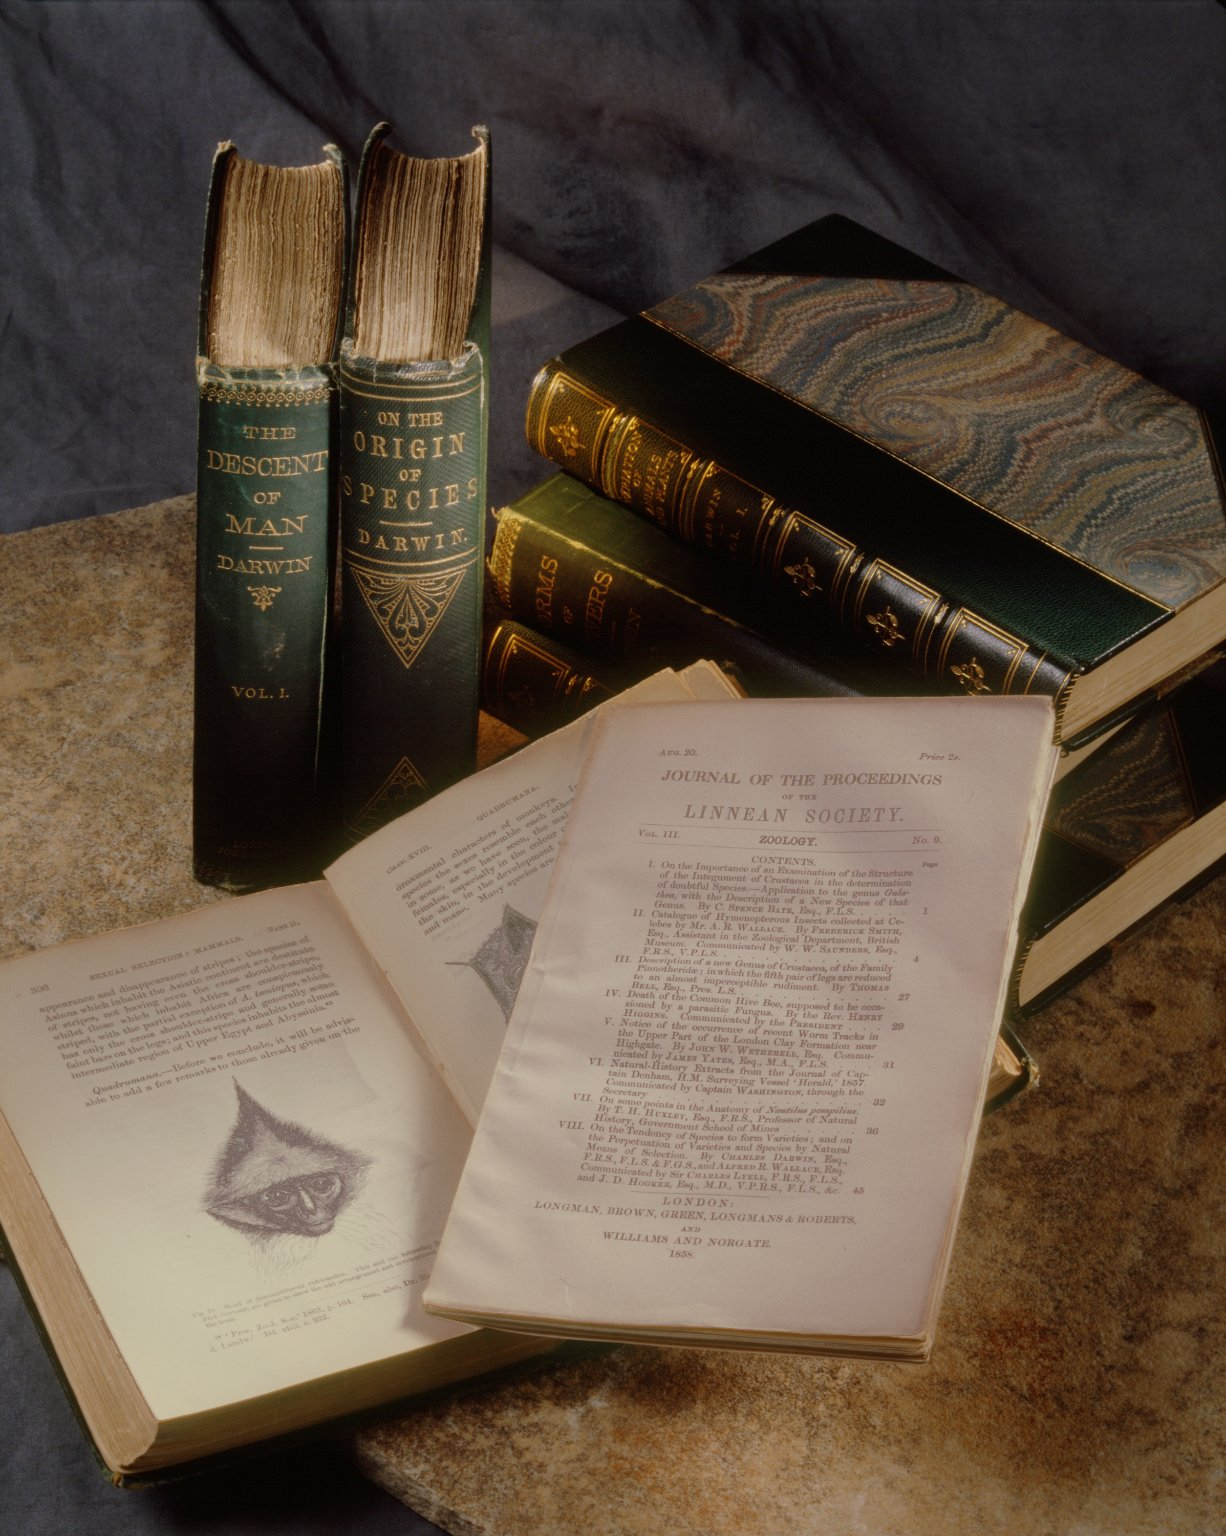 Montage of books by Charles Darwin